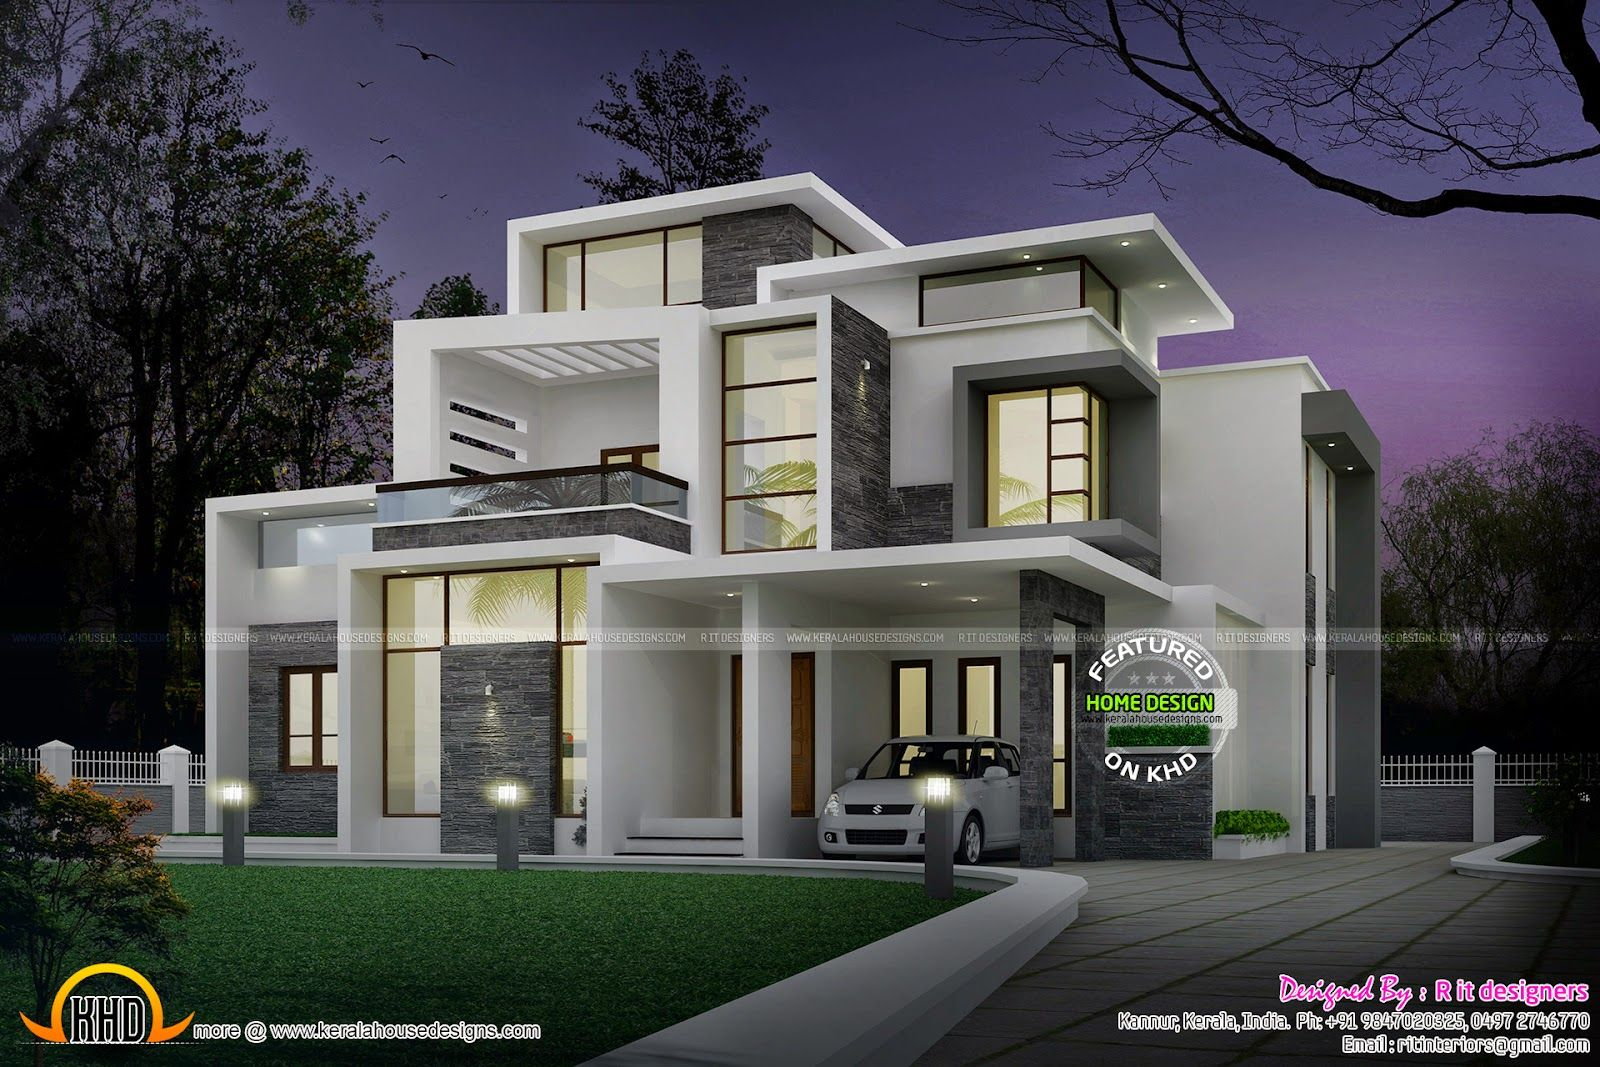 Grand contemporary home design kerala home design and for Contemporary home design plans